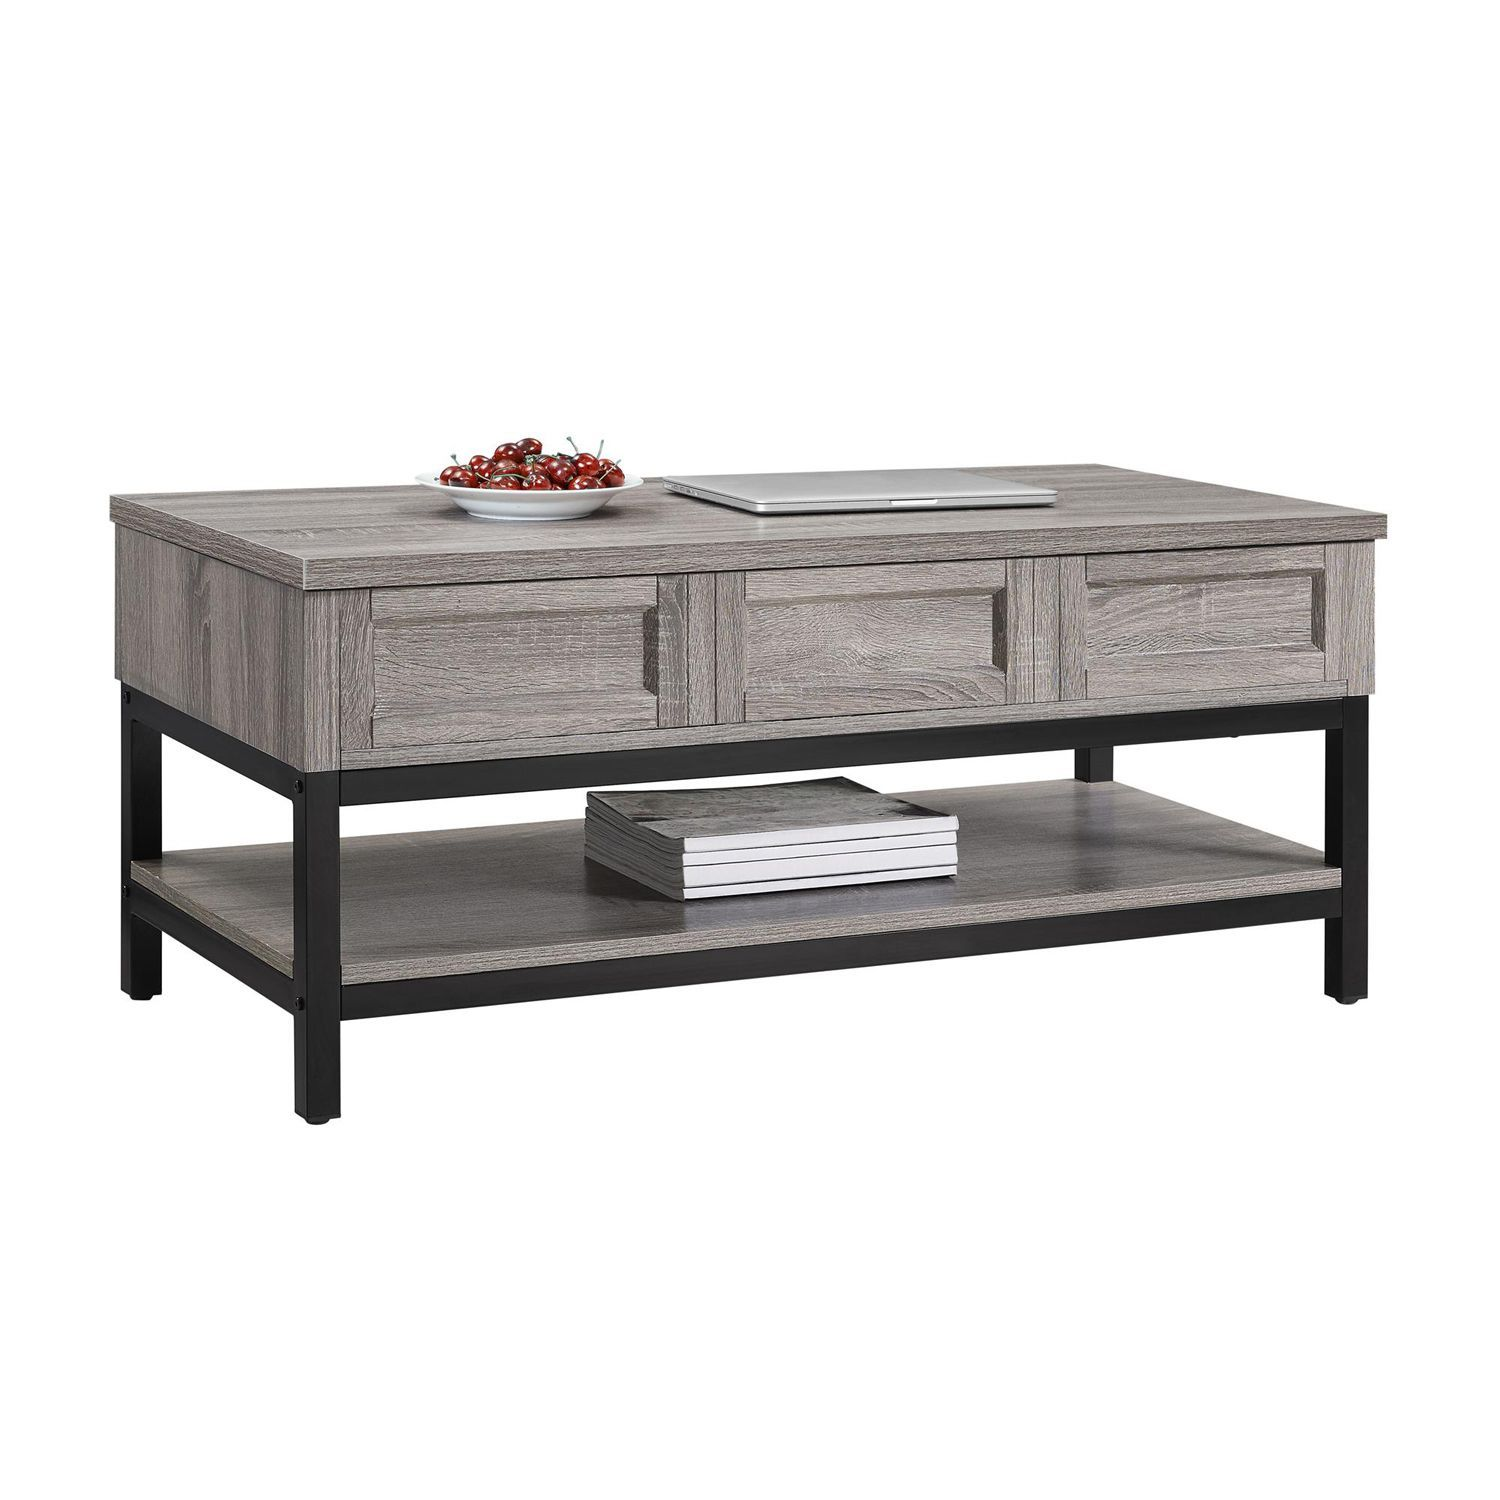 Whisperwood Lift Up Weathered Oak Coffee Table Coffee Table